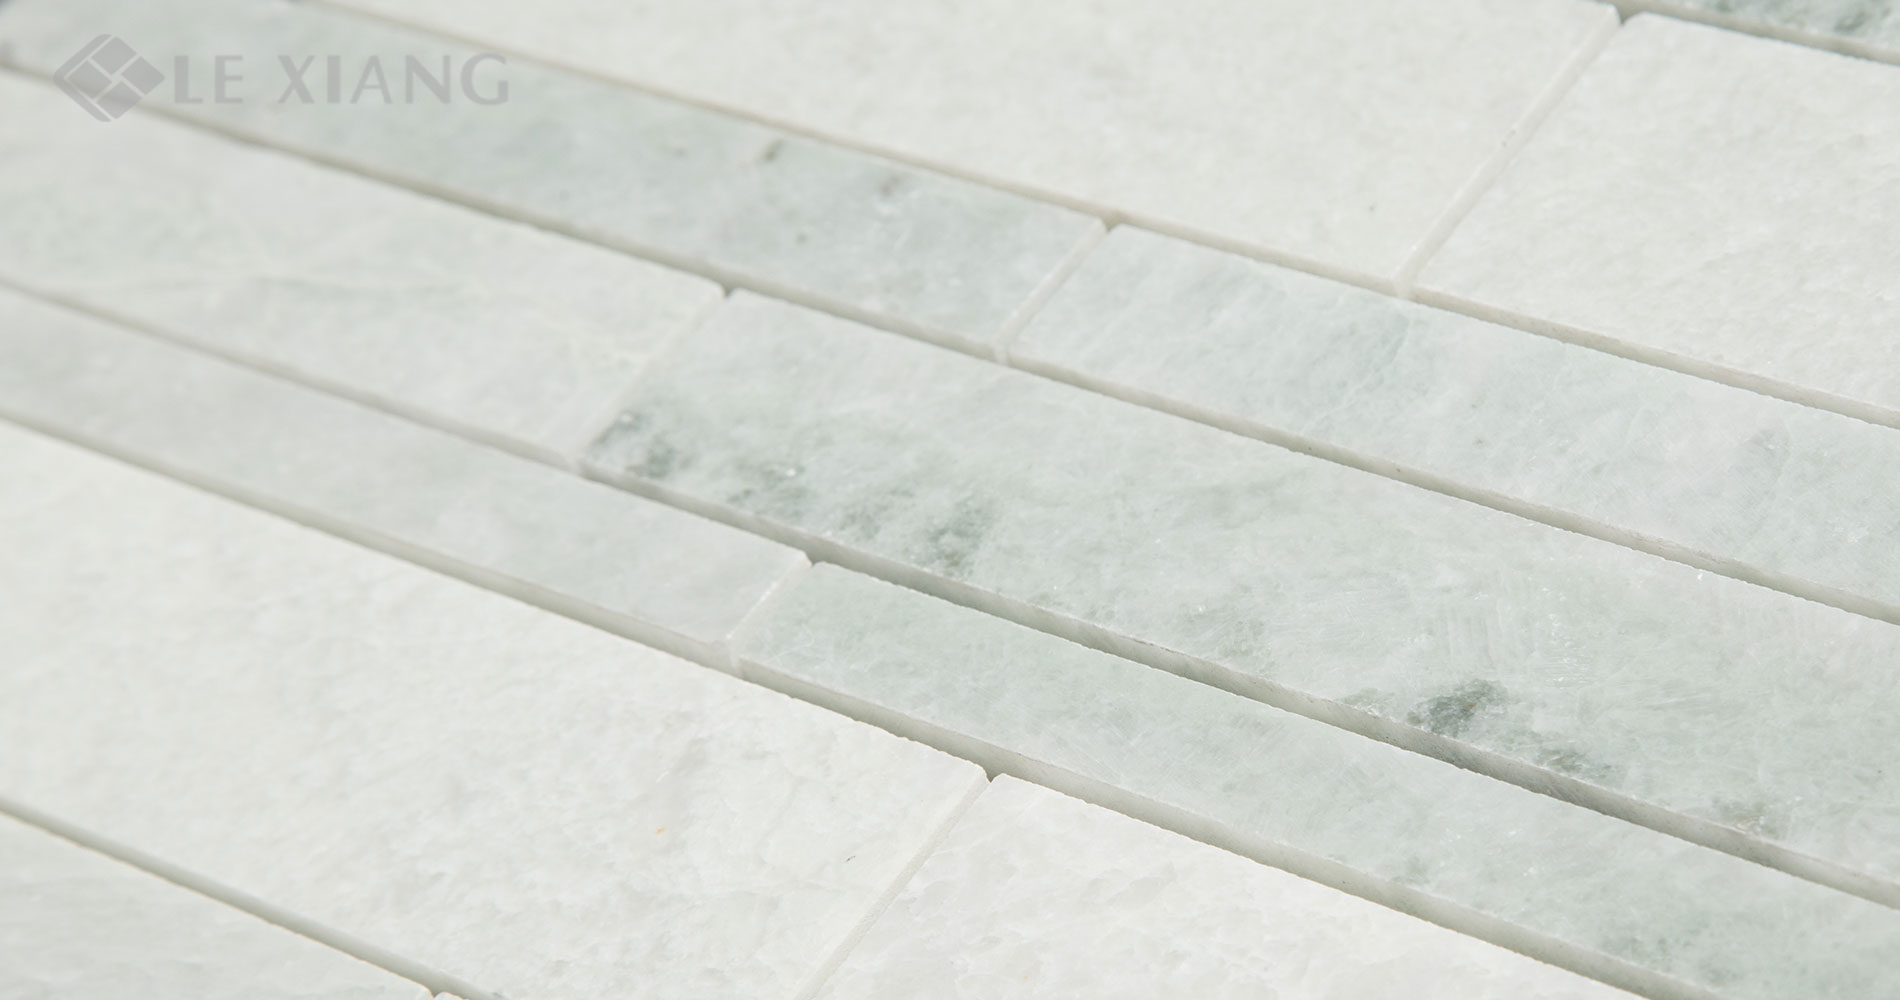 Marble-Strip-Mosaic-Tile-For-Kitchen-Backsplash-And-Bathroom-Floor-Backsplash-Wall-3-6